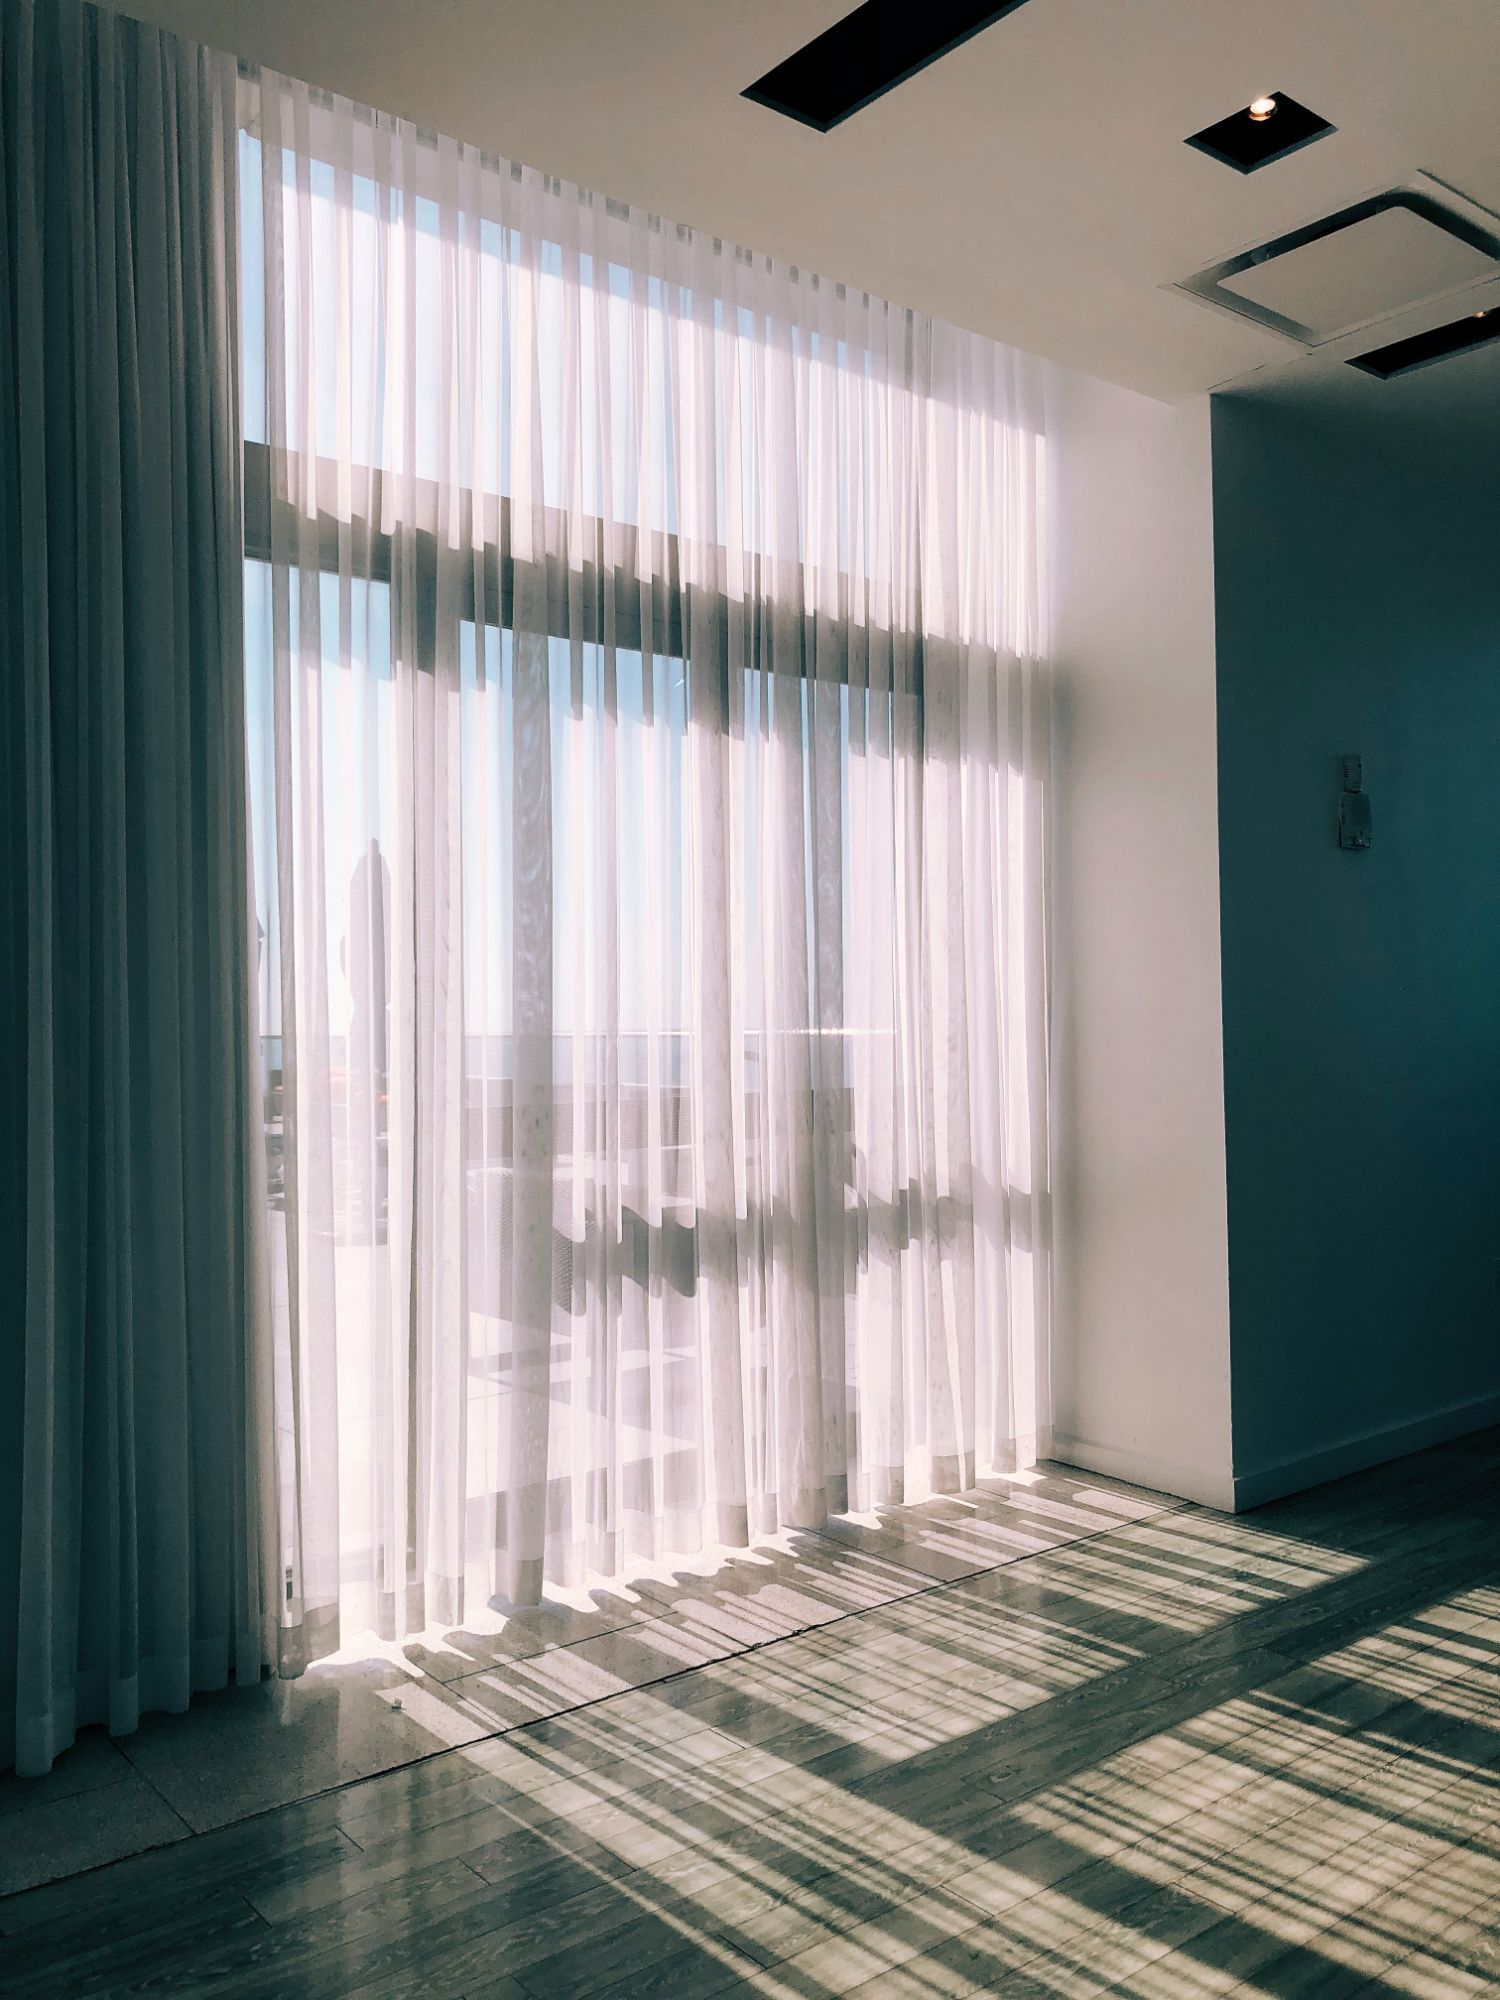 Curtain and Blinds Installations